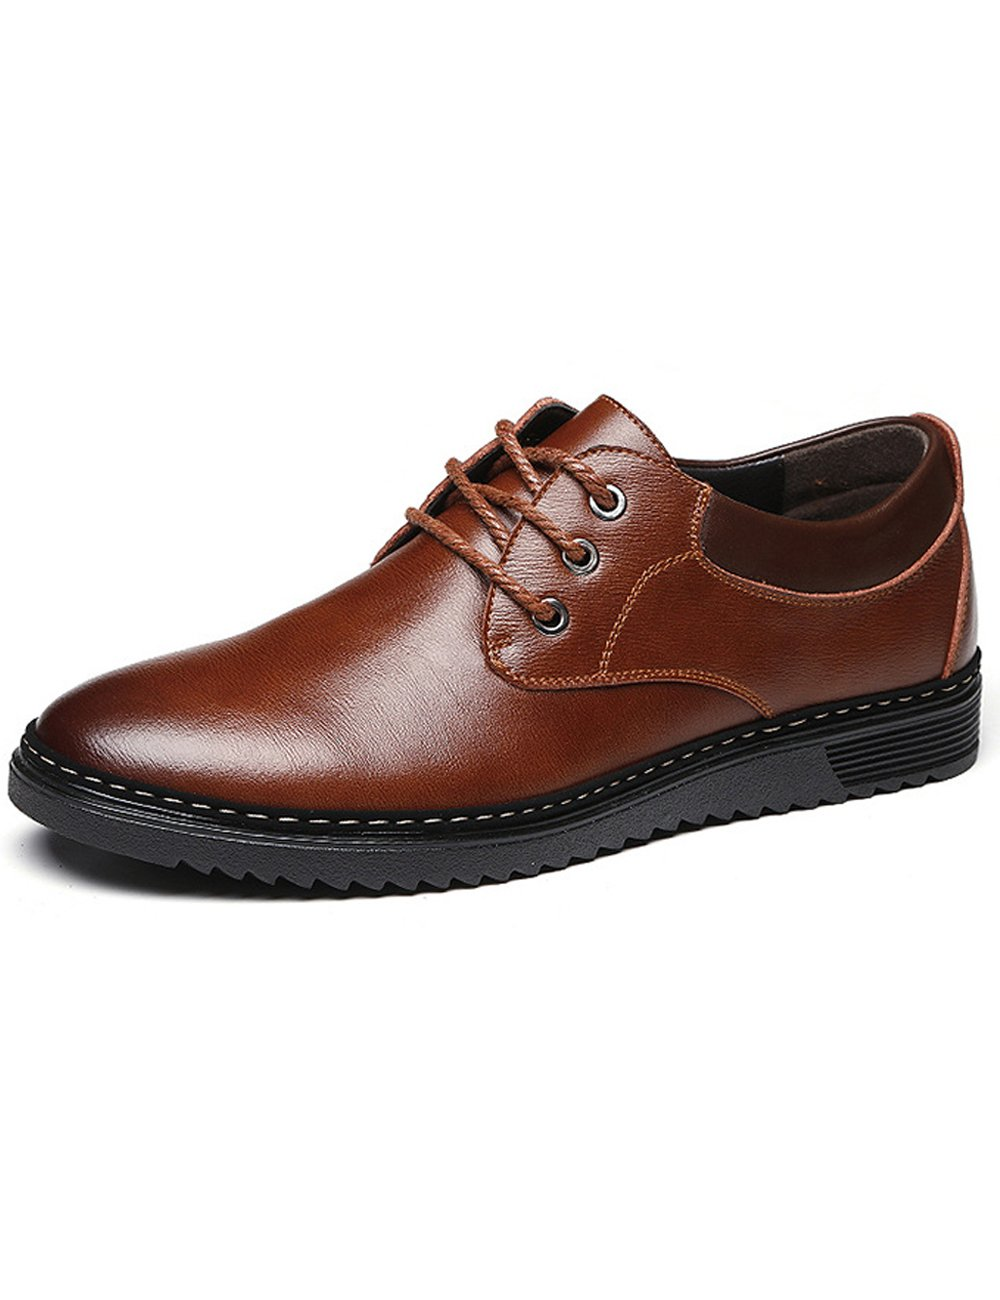 Zoulee Men's Oxford Dress Shoes Formal Leather Shoes Flats Laces Business Shoes Brown US 7.5//CH 40